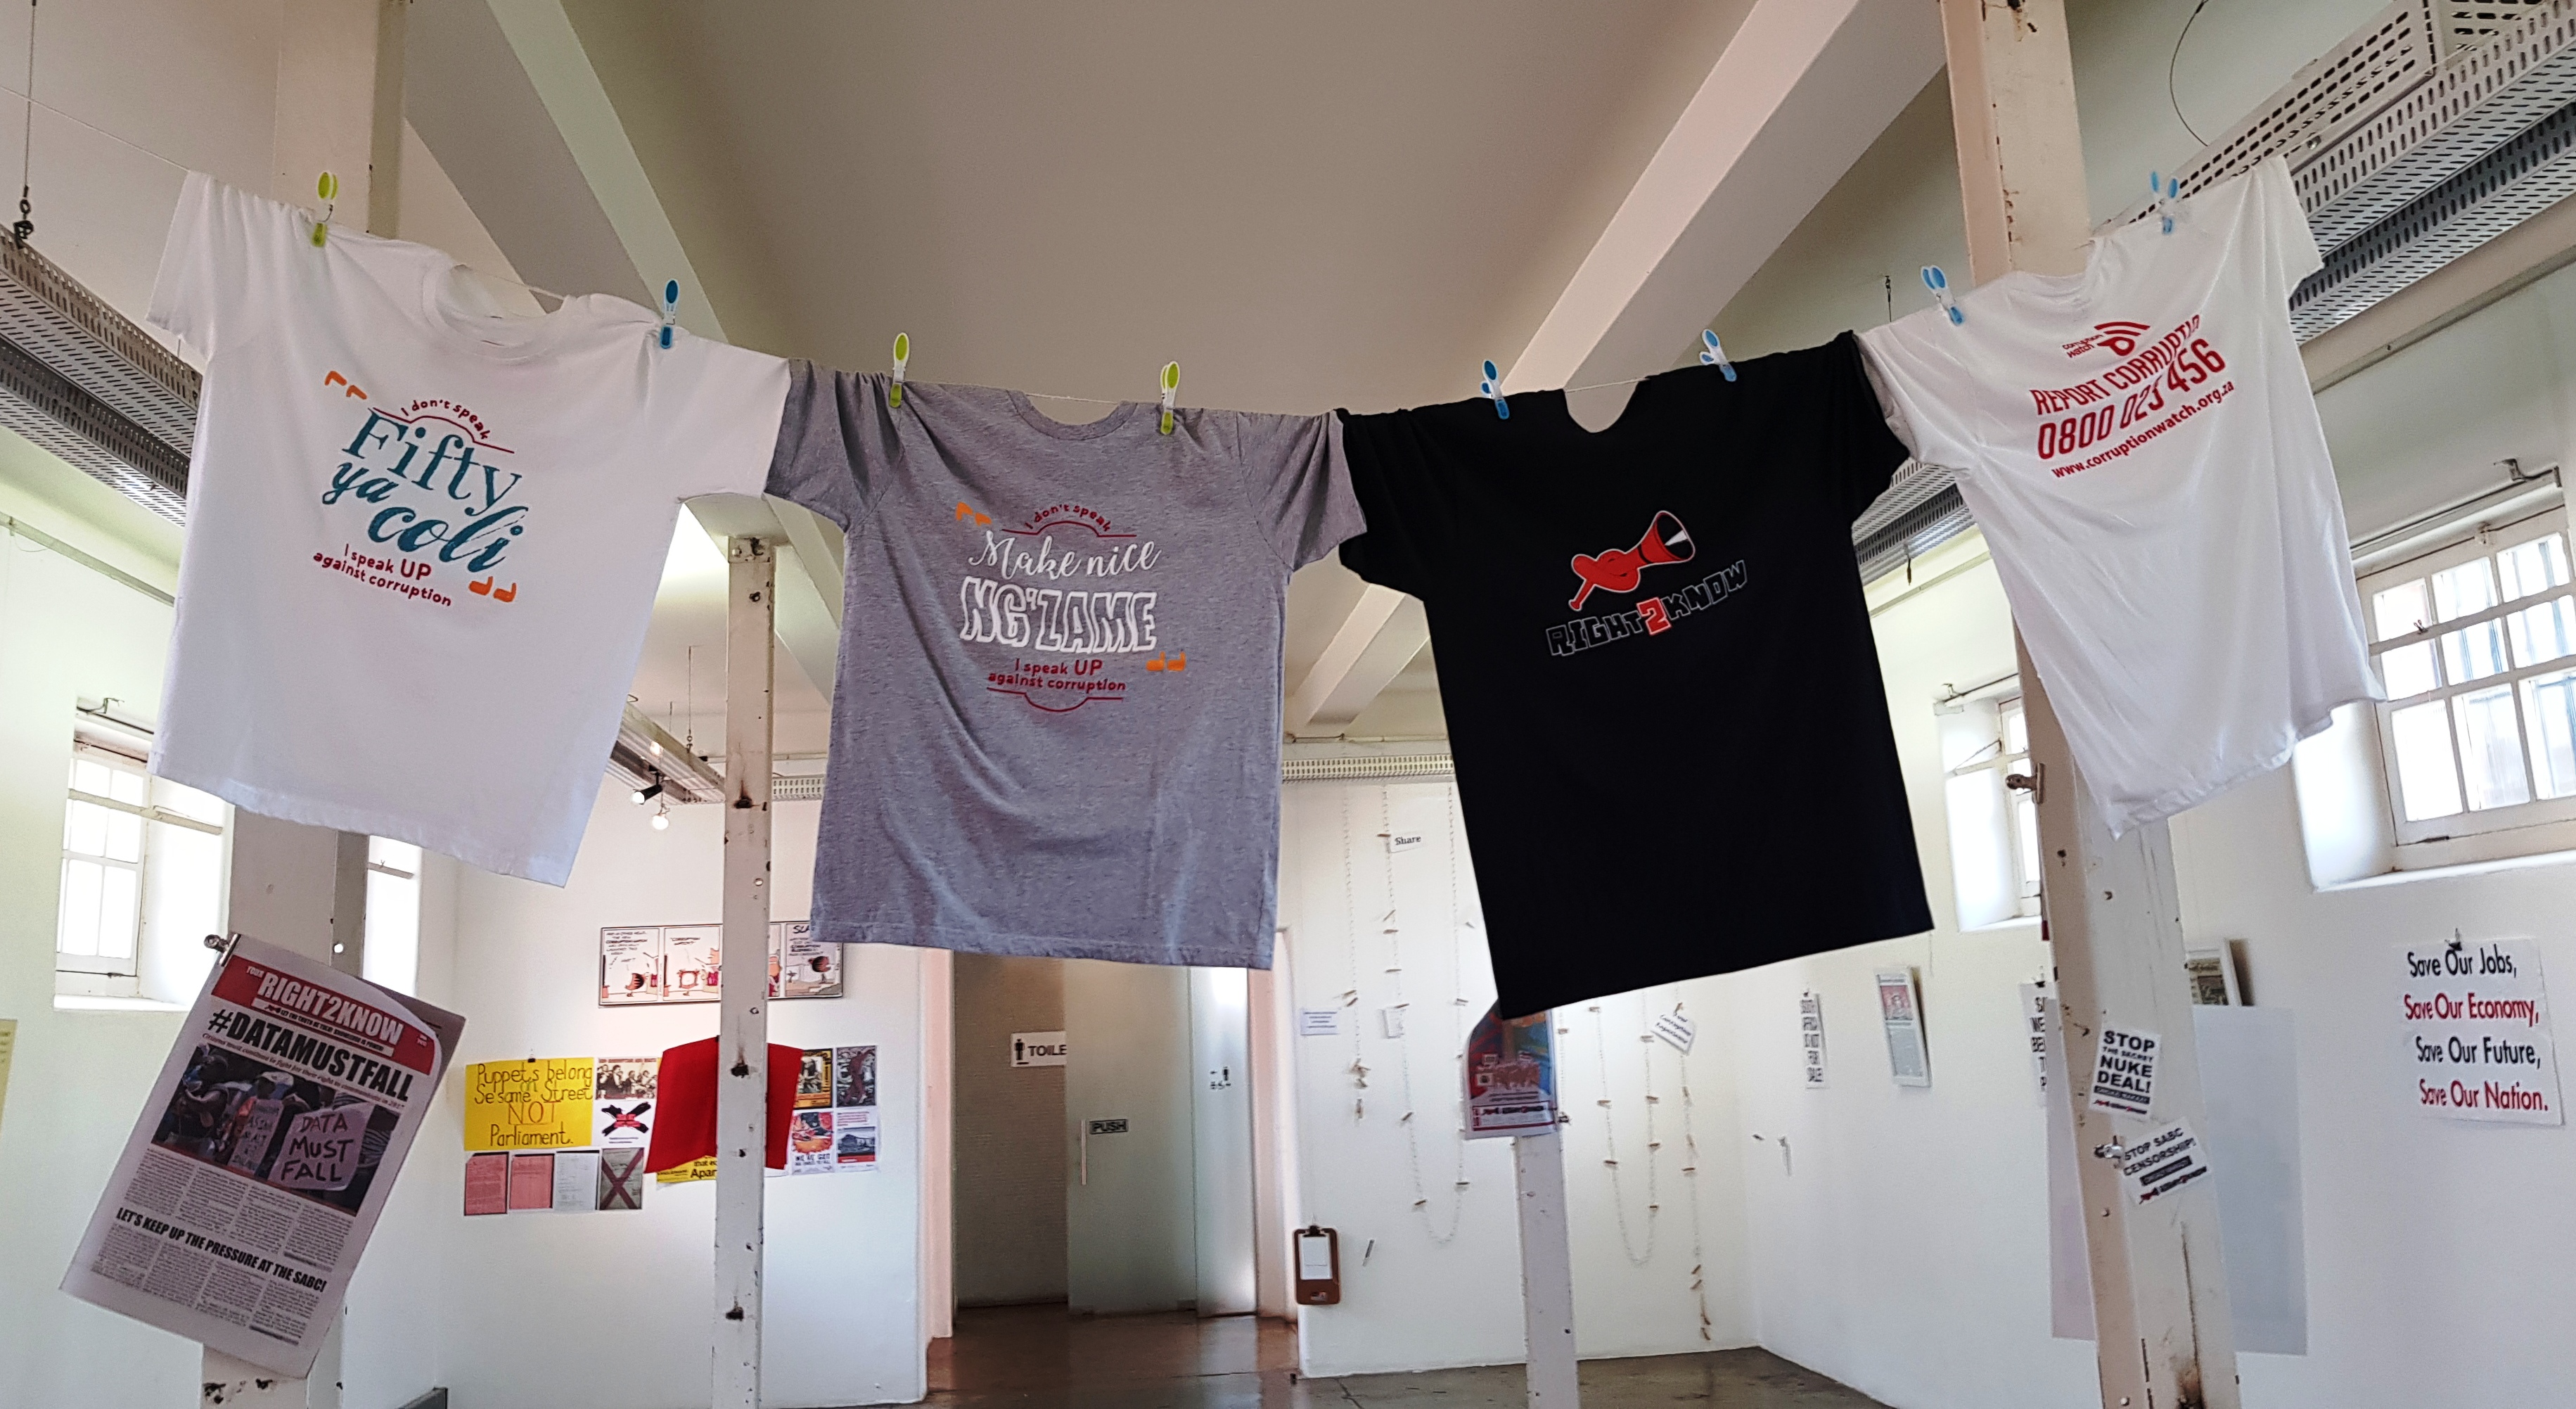 Tshirts from the people against corruption exhibition